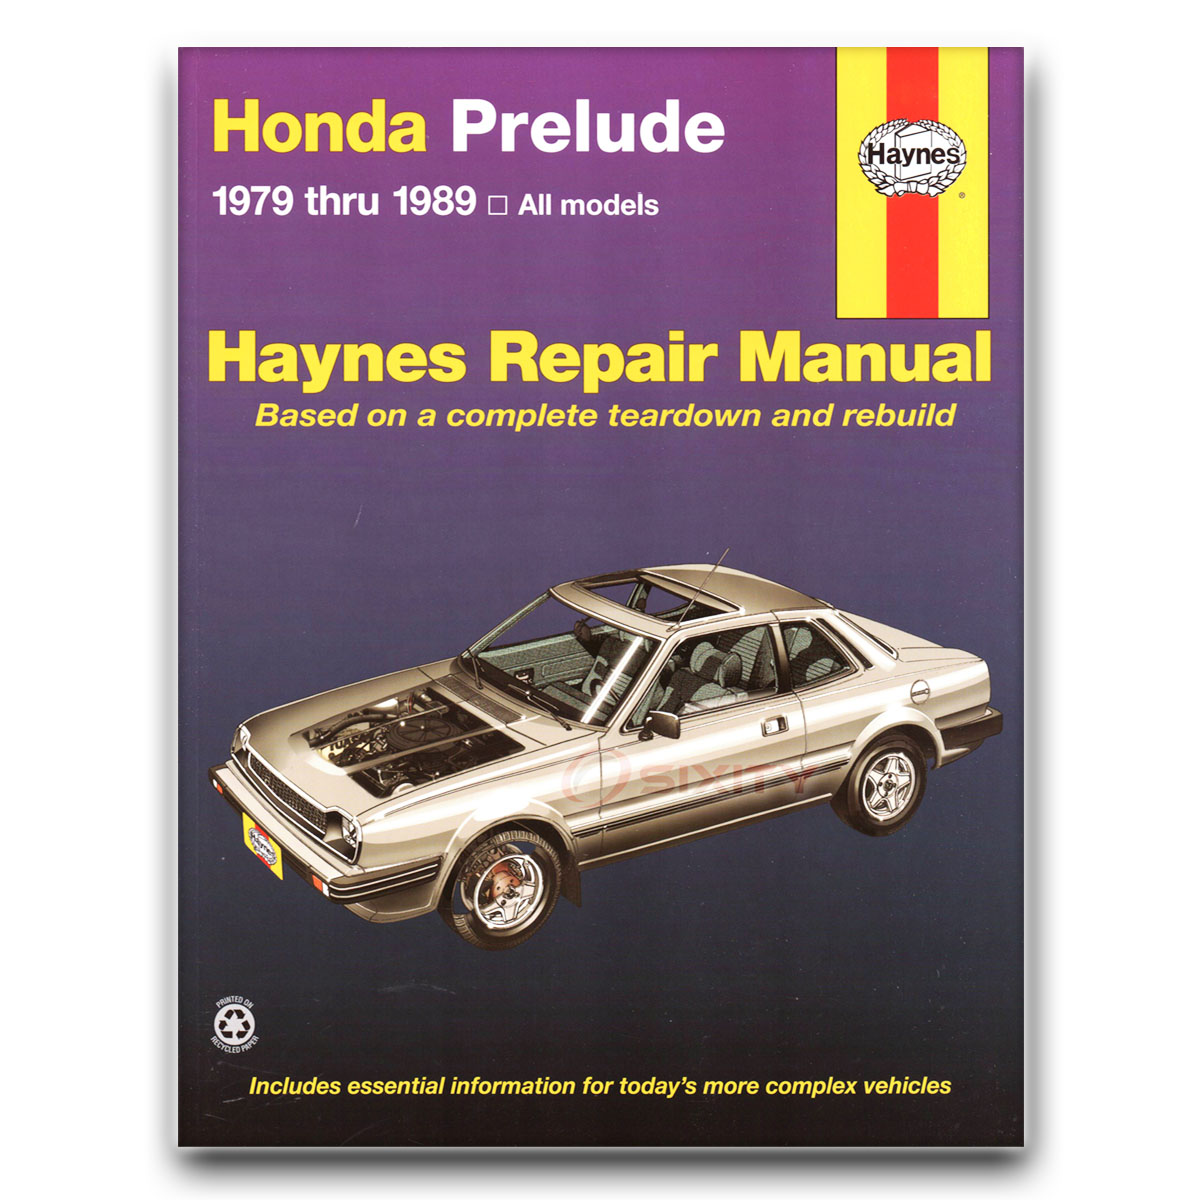 honda prelude haynes repair manual 2 0 si 4ws base shop service rh ebay com 89 honda prelude manual 1989 honda prelude manual swap